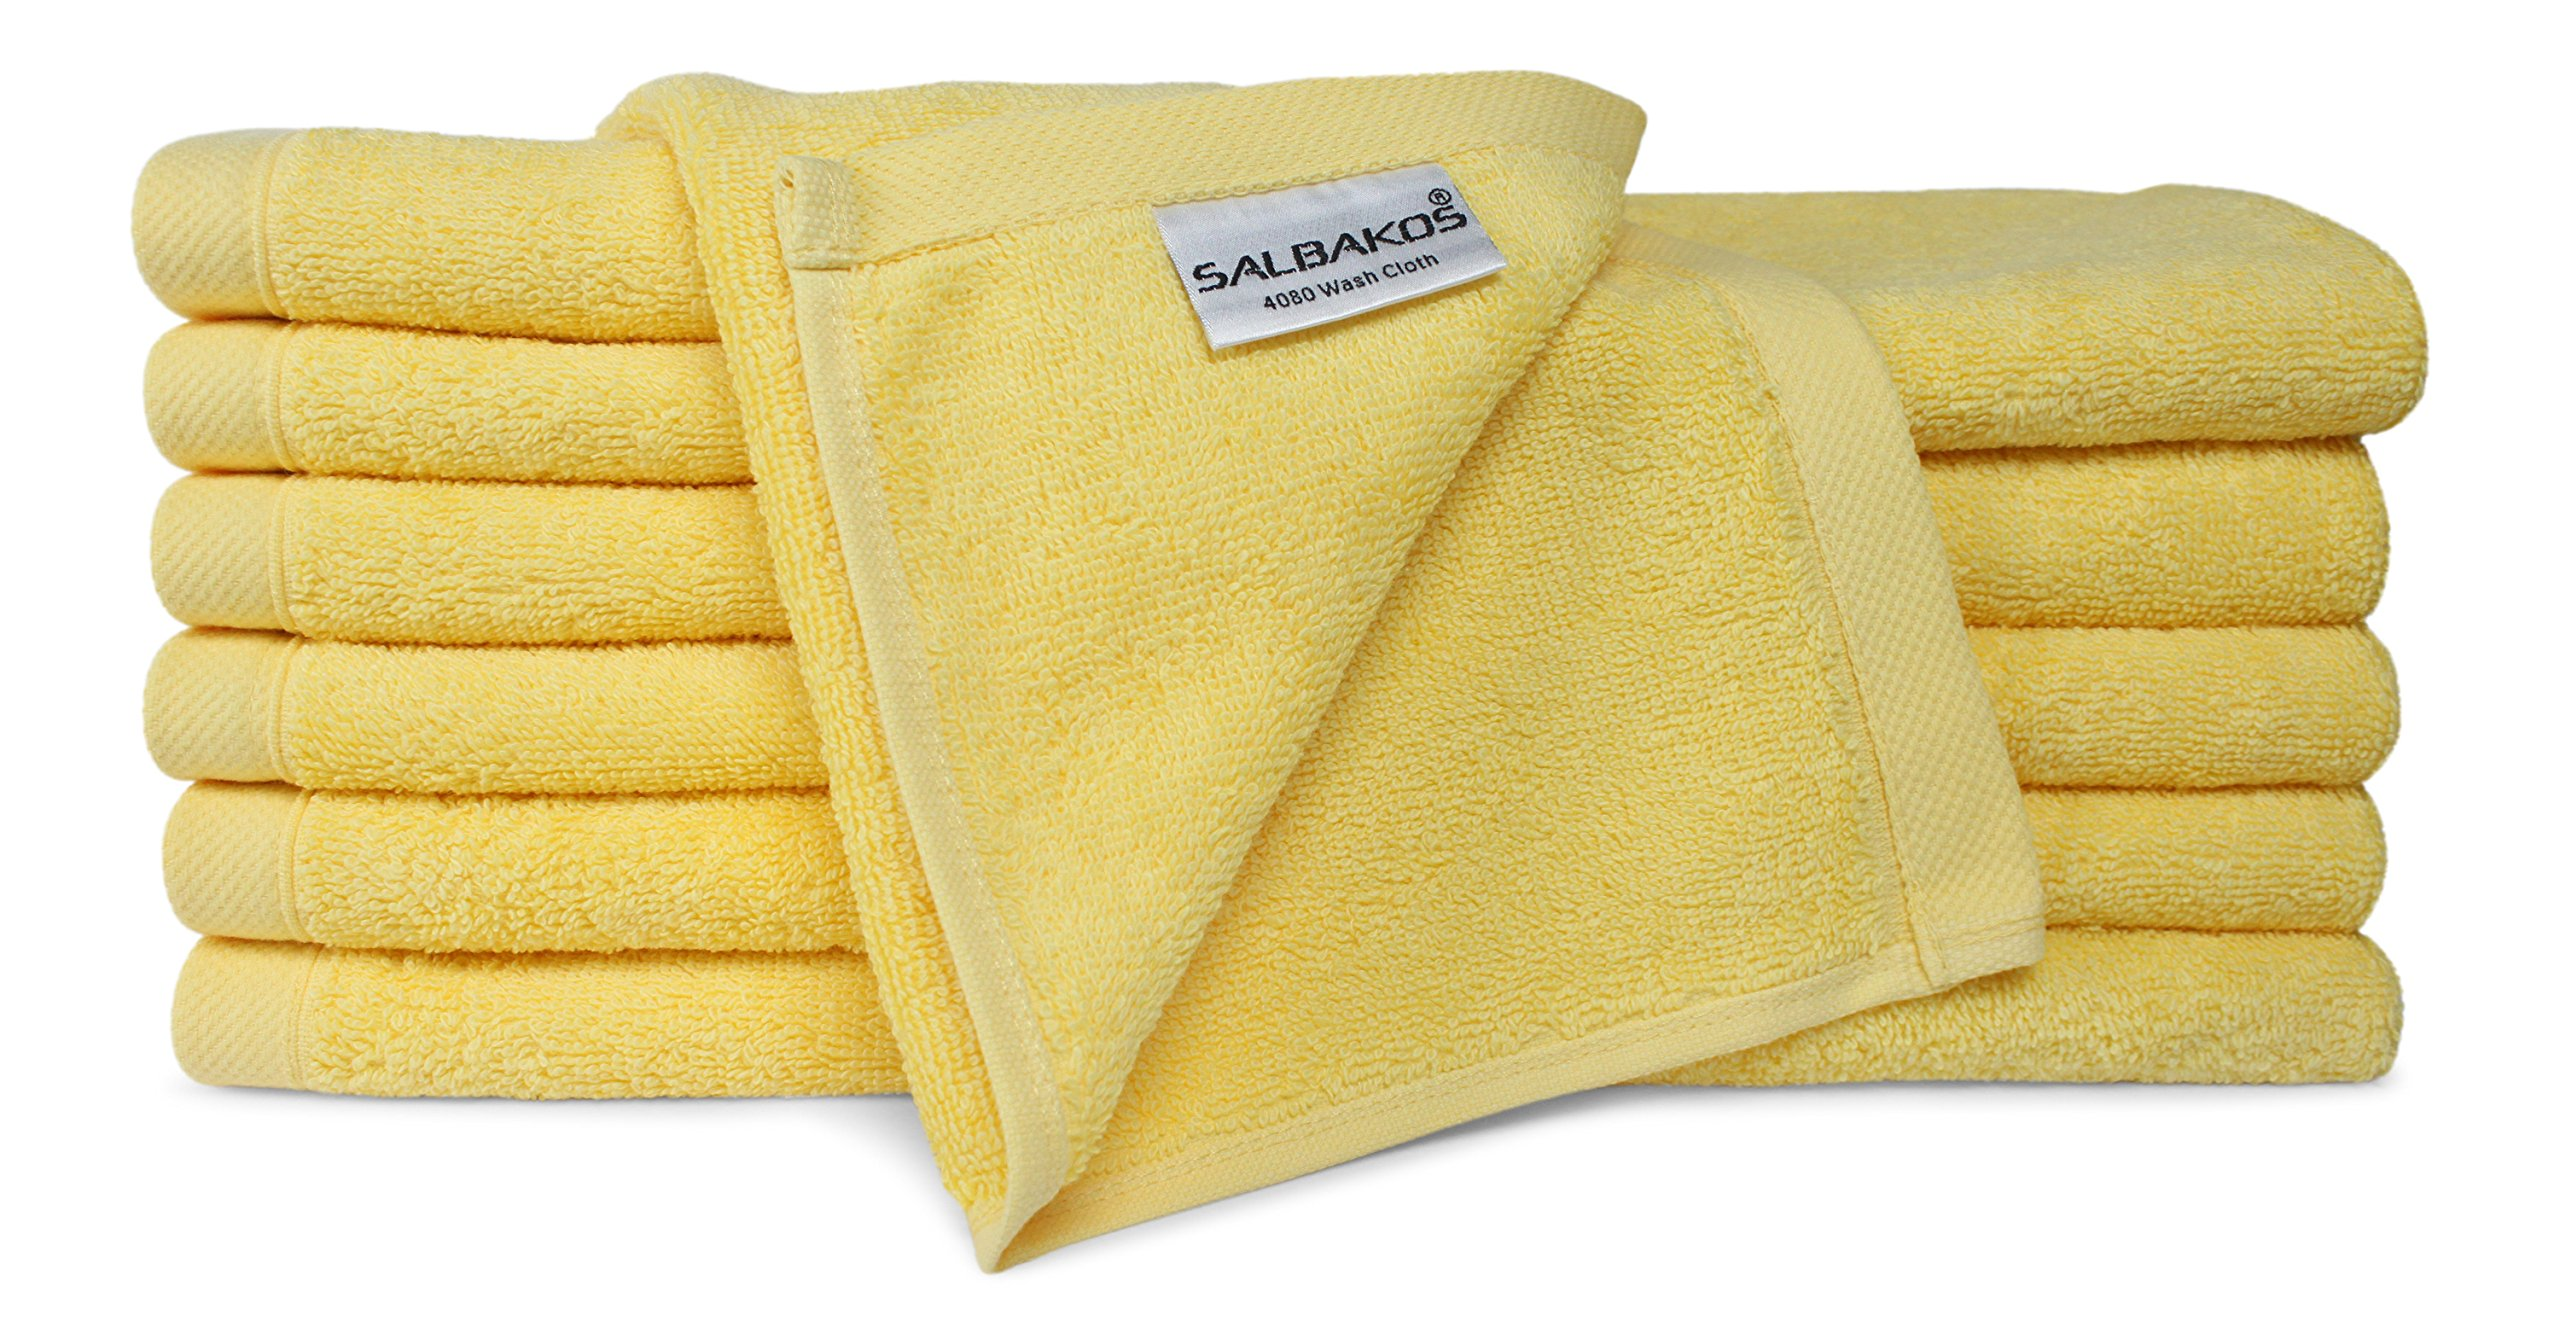 SALBAKOS Luxury Hotel & Spa Turkish Cotton 12-Piece Eco-Friendly Washcloth Set Bath, Yellow